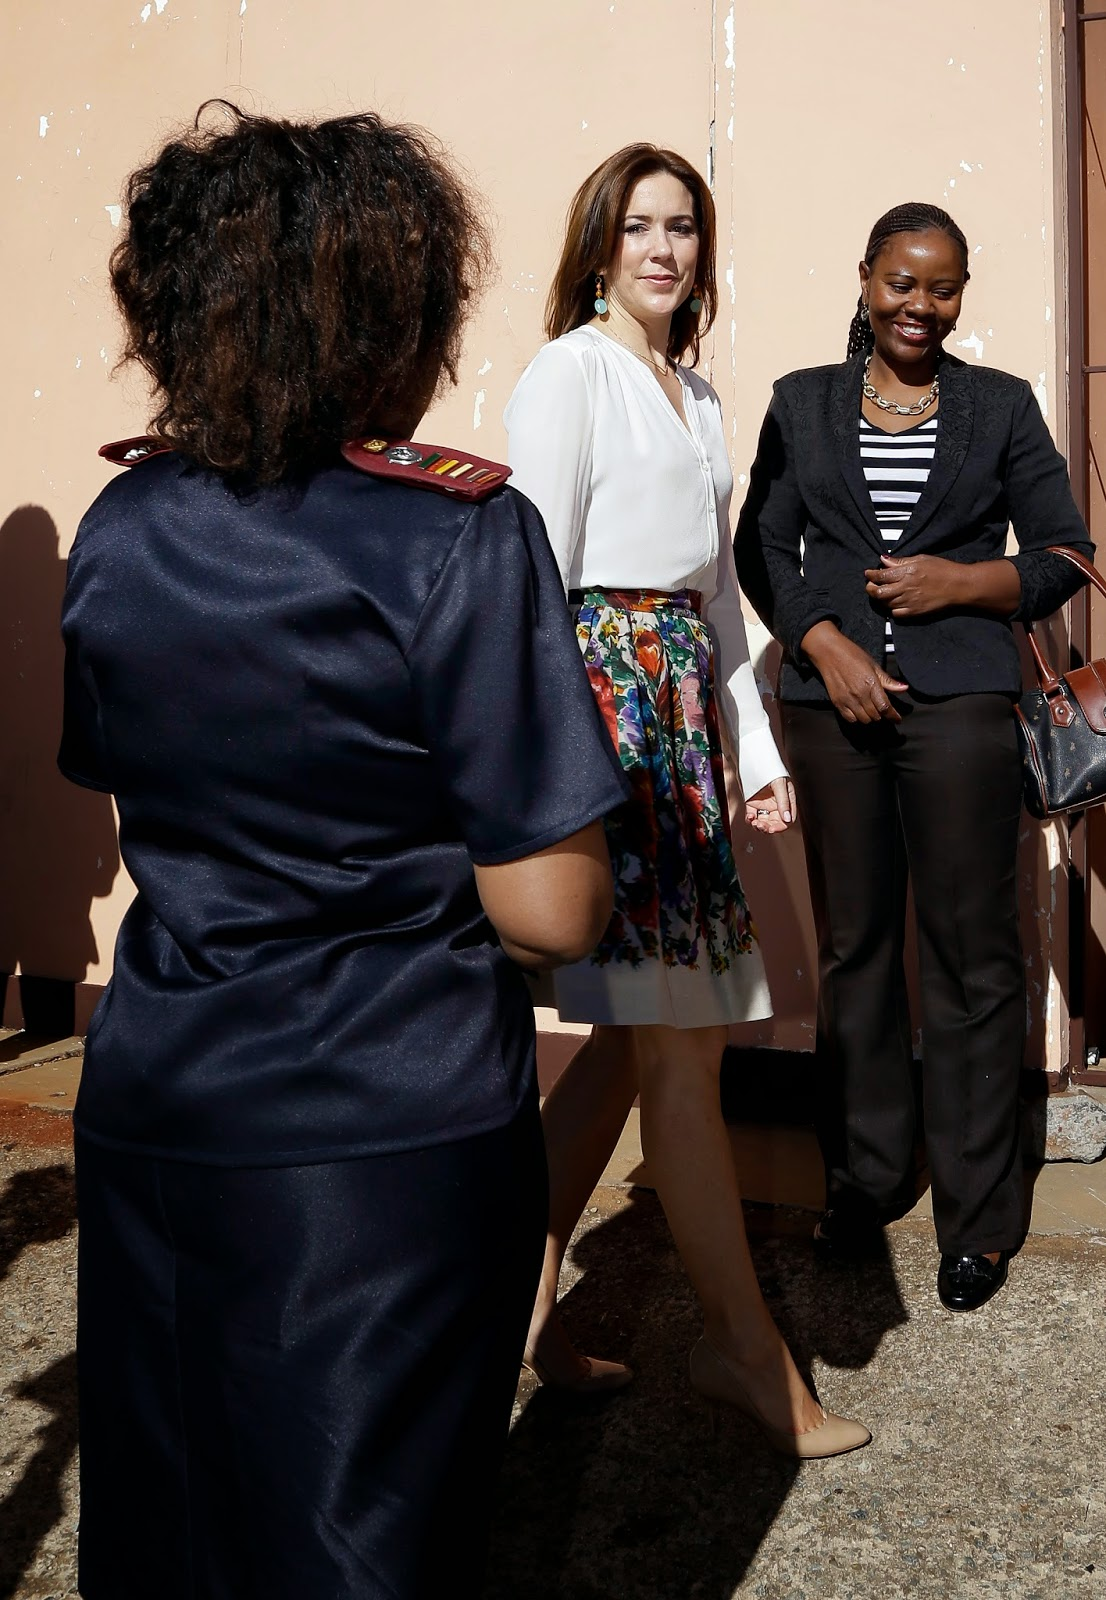 Crown Princess Mary visit to South Africa